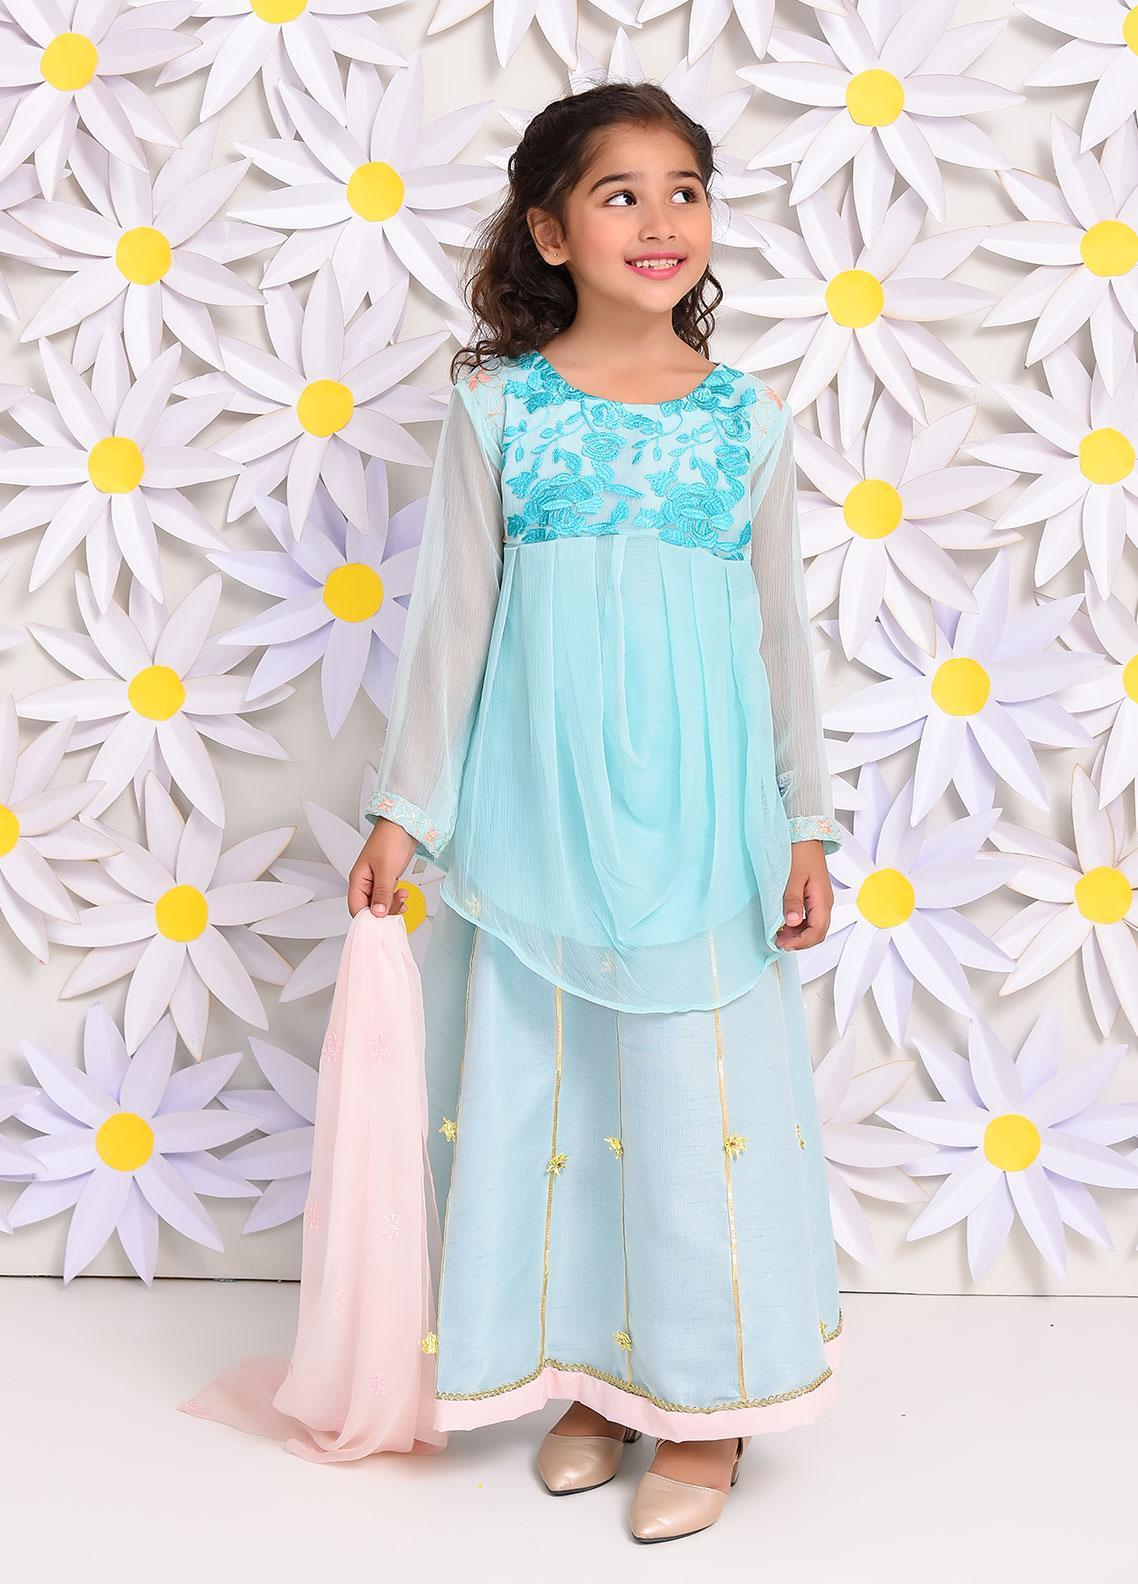 Ochre Chiffon Embroidered Formal 3 Piece Suit for Girls -  OFW 222 Sea Green